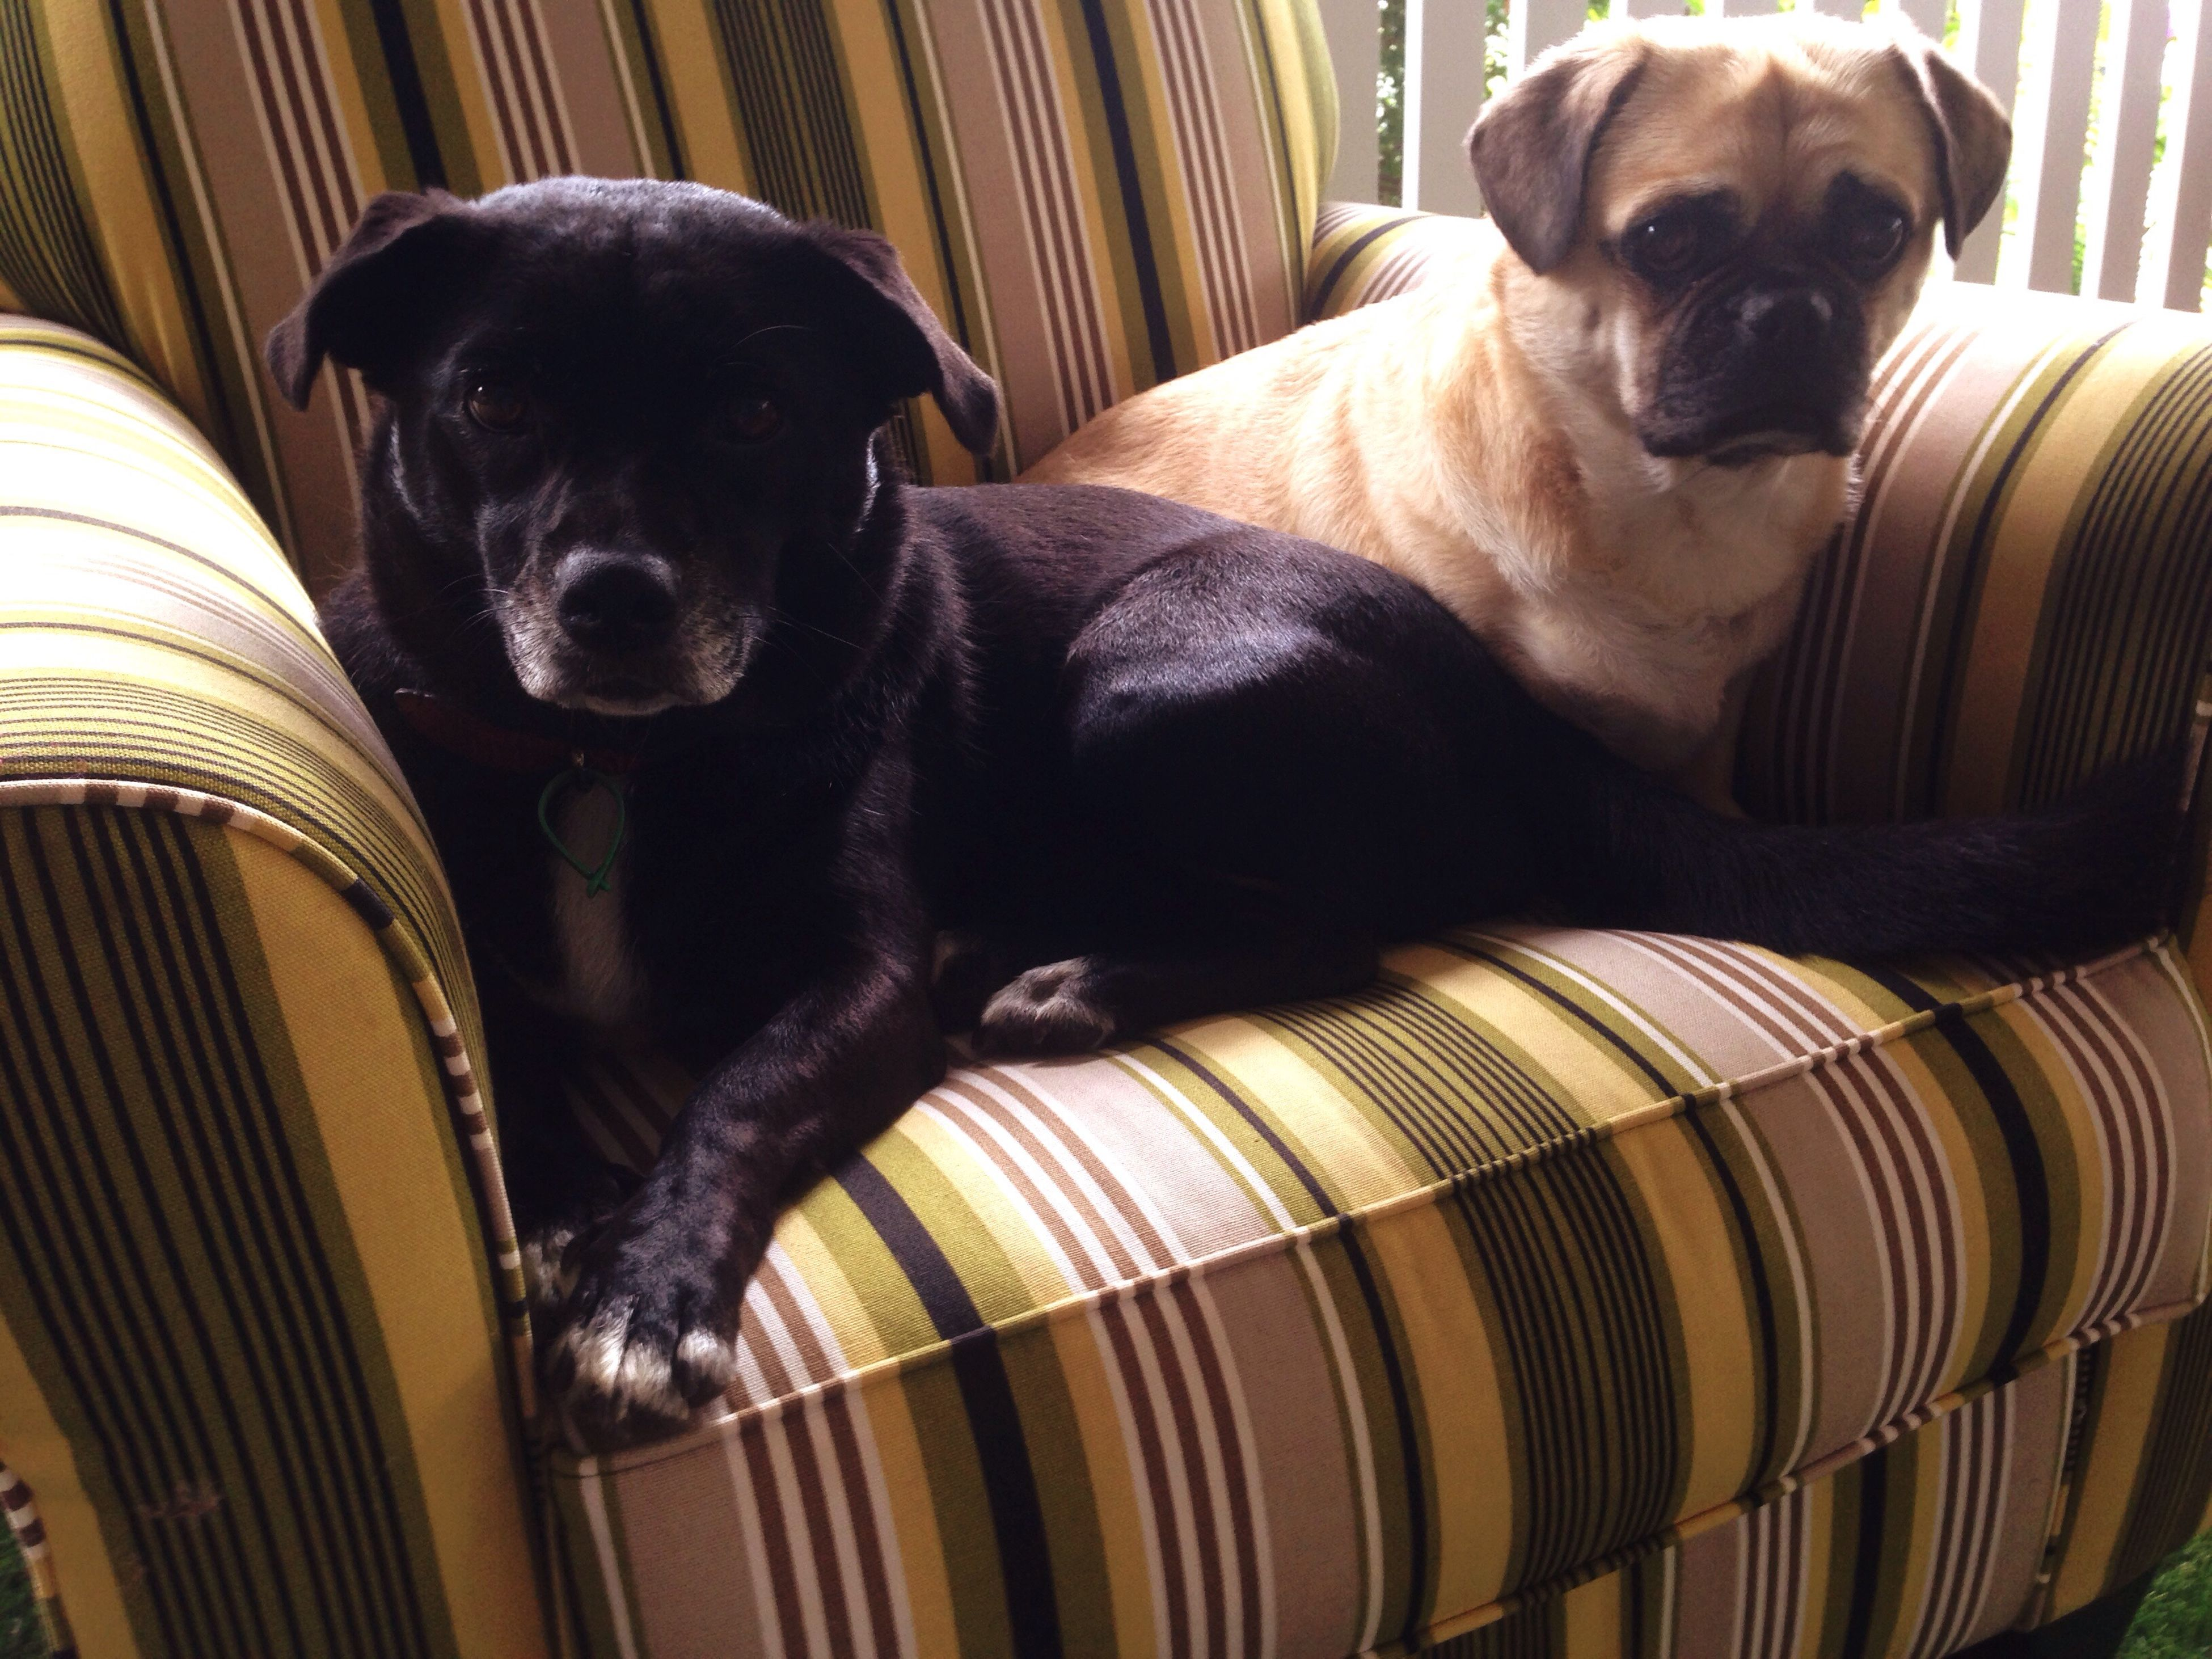 domestic animals, pets, animal themes, mammal, dog, one animal, indoors, looking at camera, portrait, relaxation, black color, animal head, resting, home interior, close-up, lying down, pet collar, sofa, two animals, home